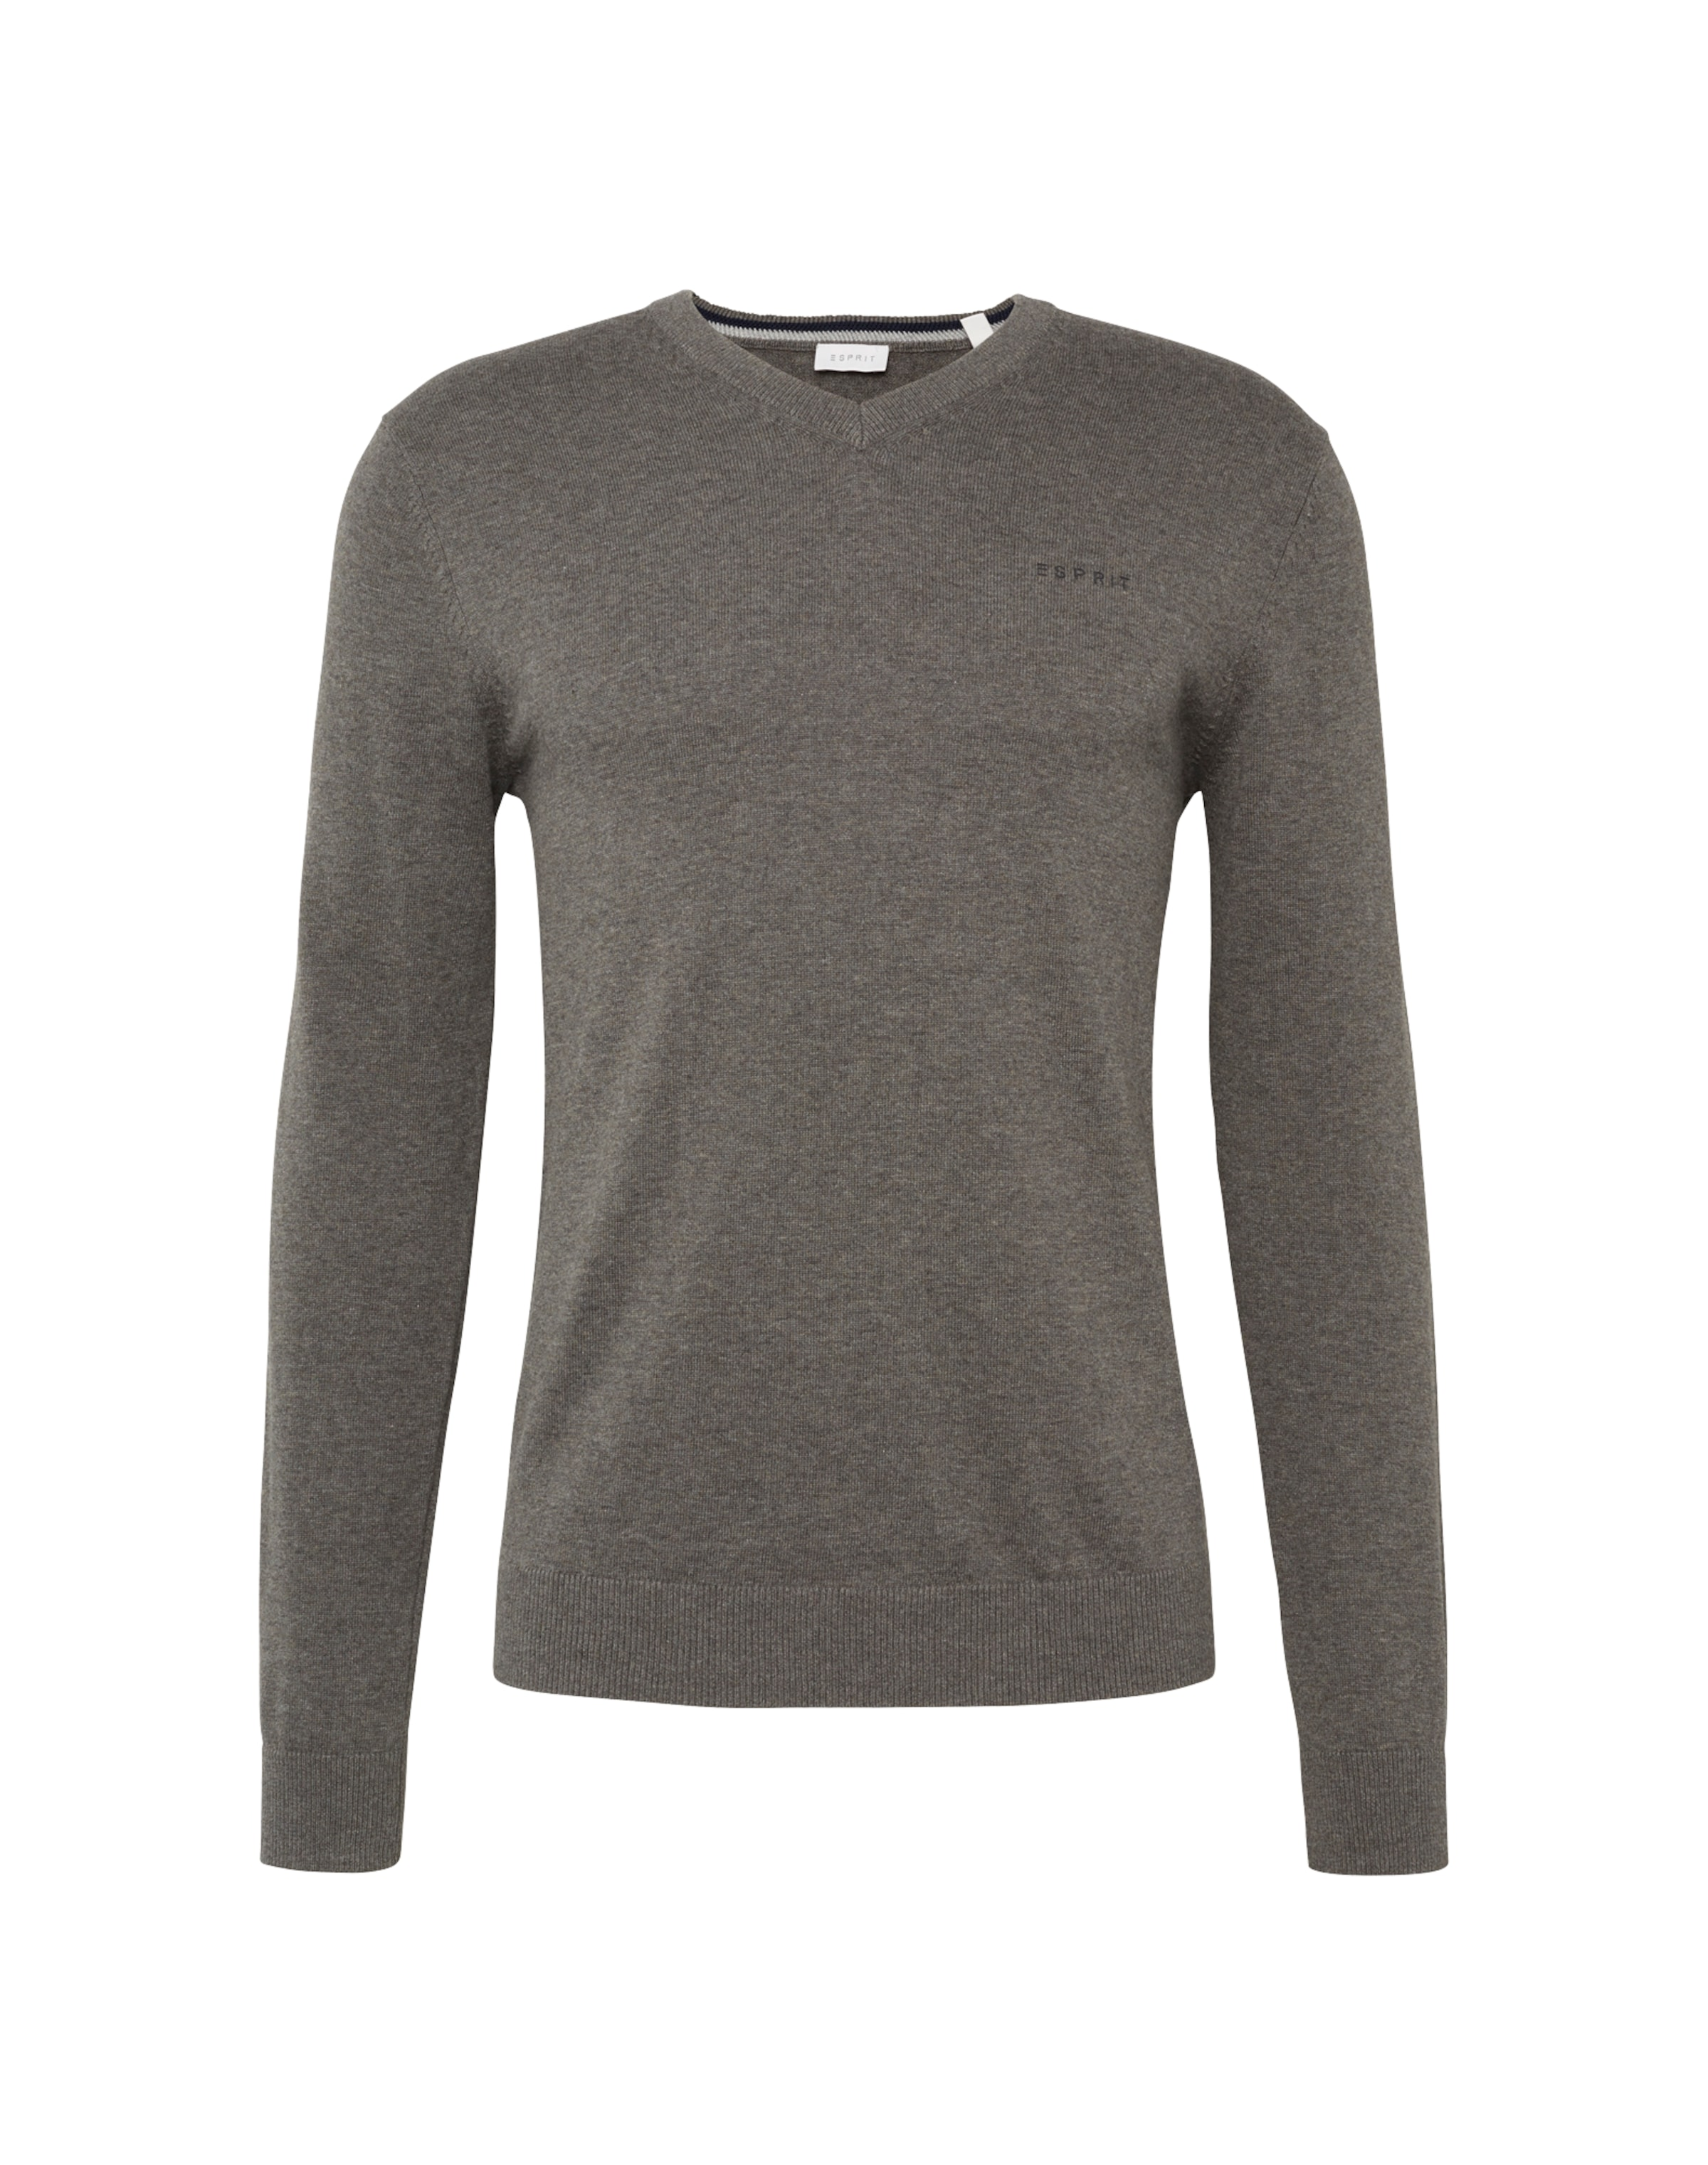 V In 'basic nk' Esprit Co Taupe Pullover nyv0ON8wm